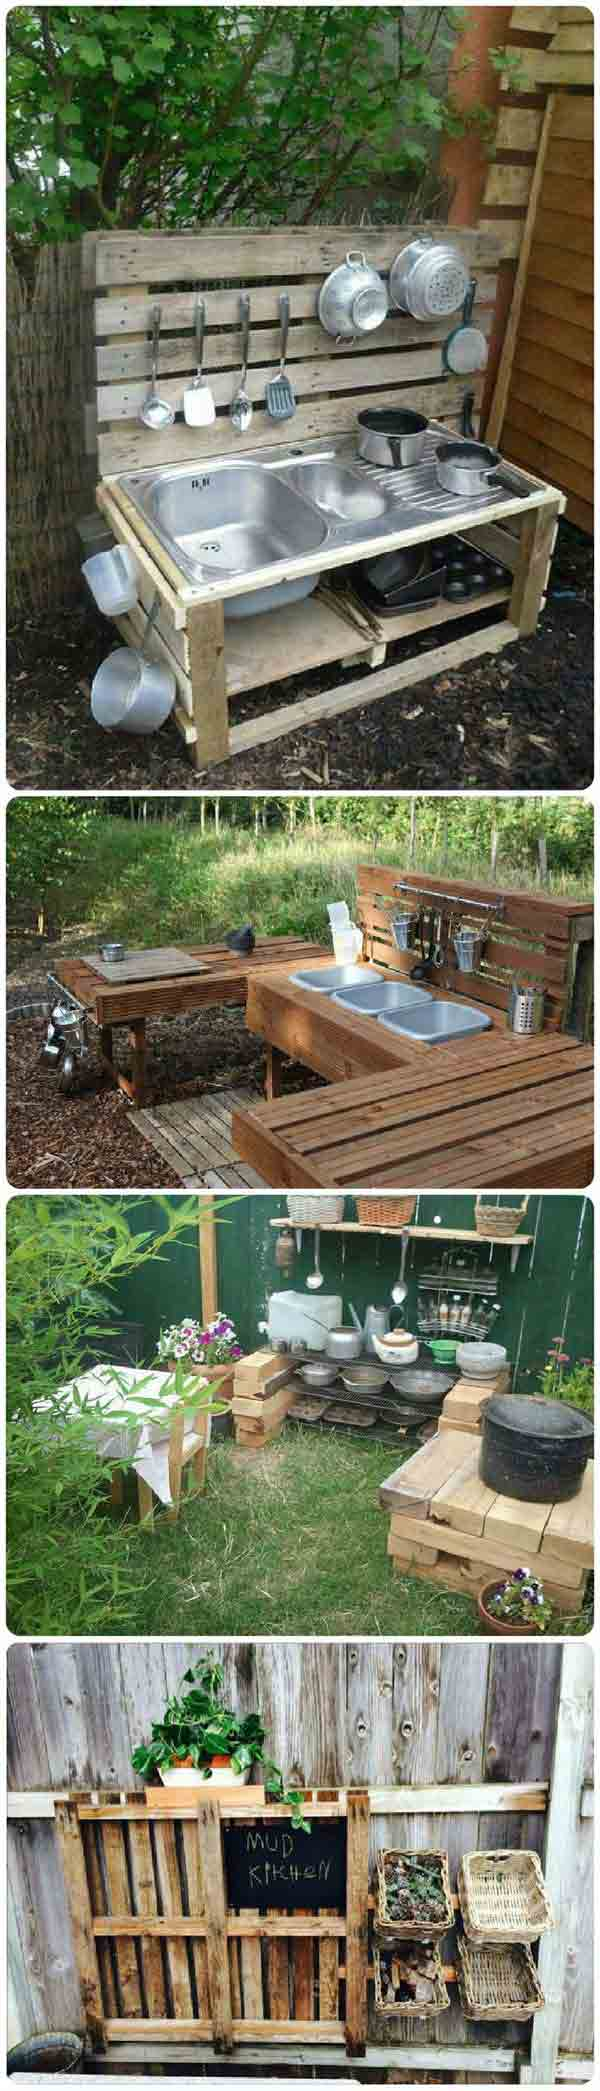 #17 CREATE AN OUTDOOR KITCHEN AND EDUCATE YOUR KIDS THROUGH PLAY